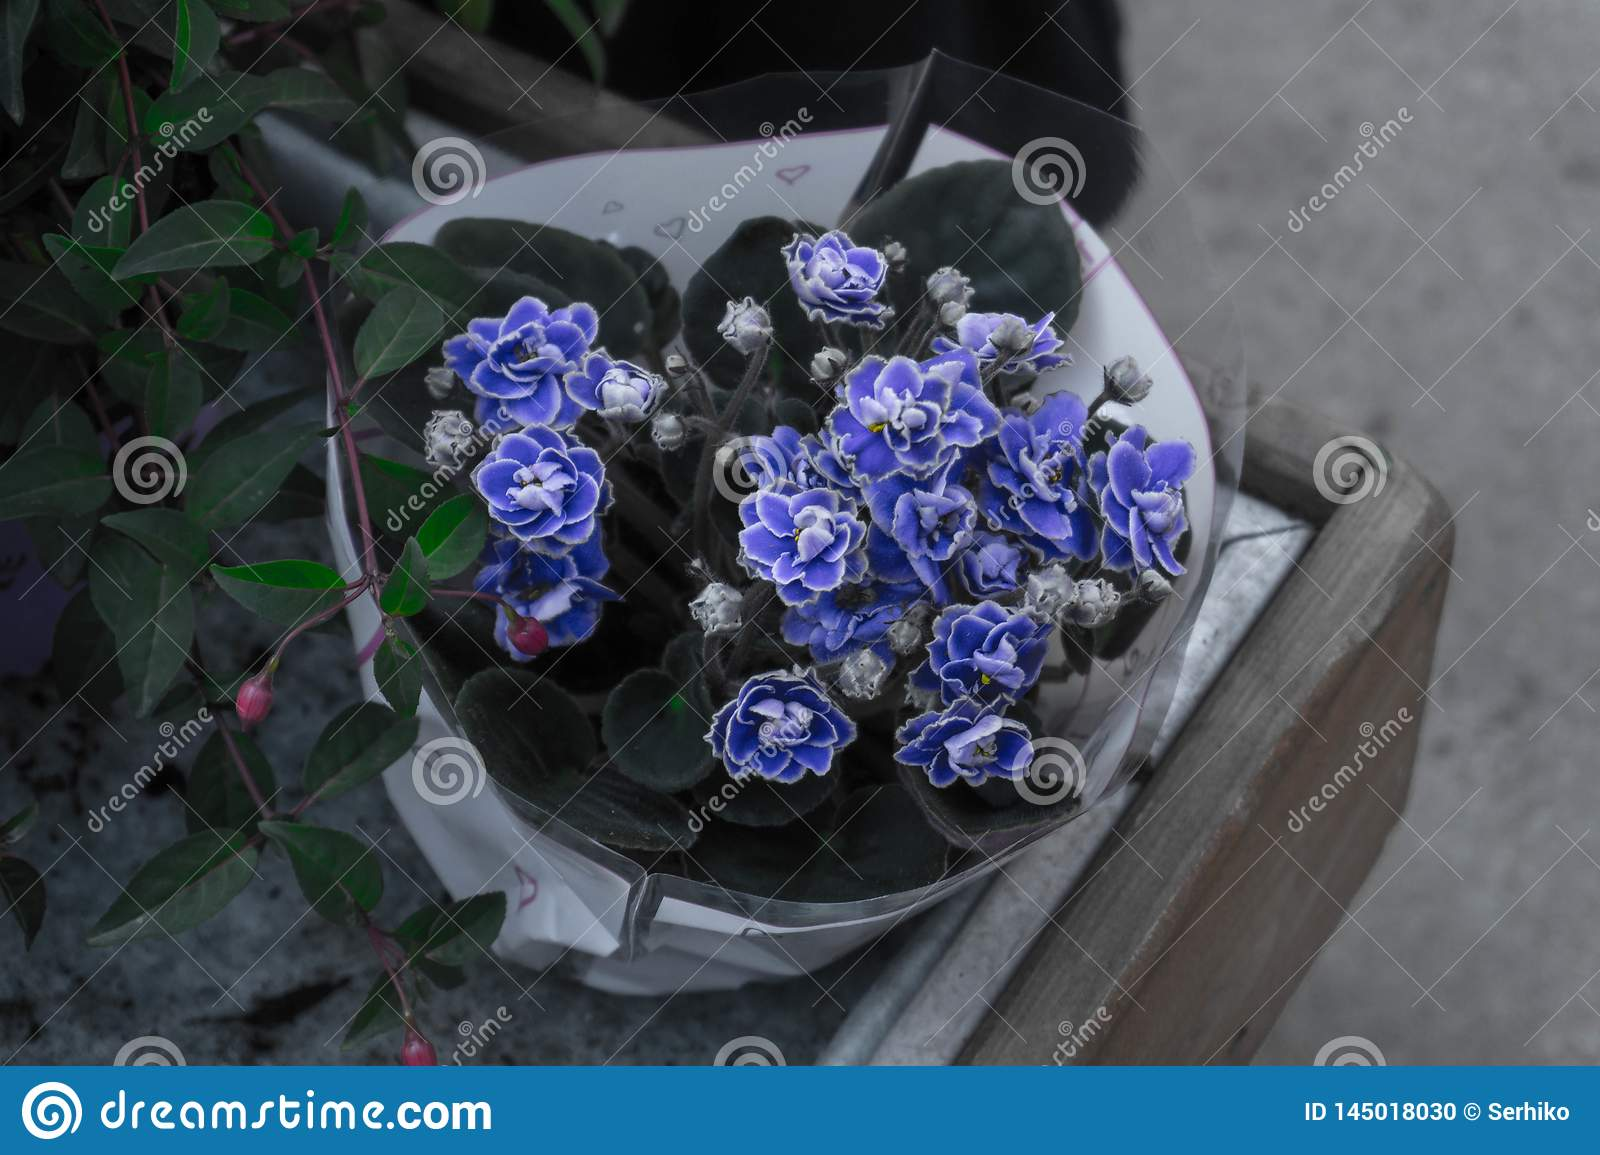 A vase with blue flowers